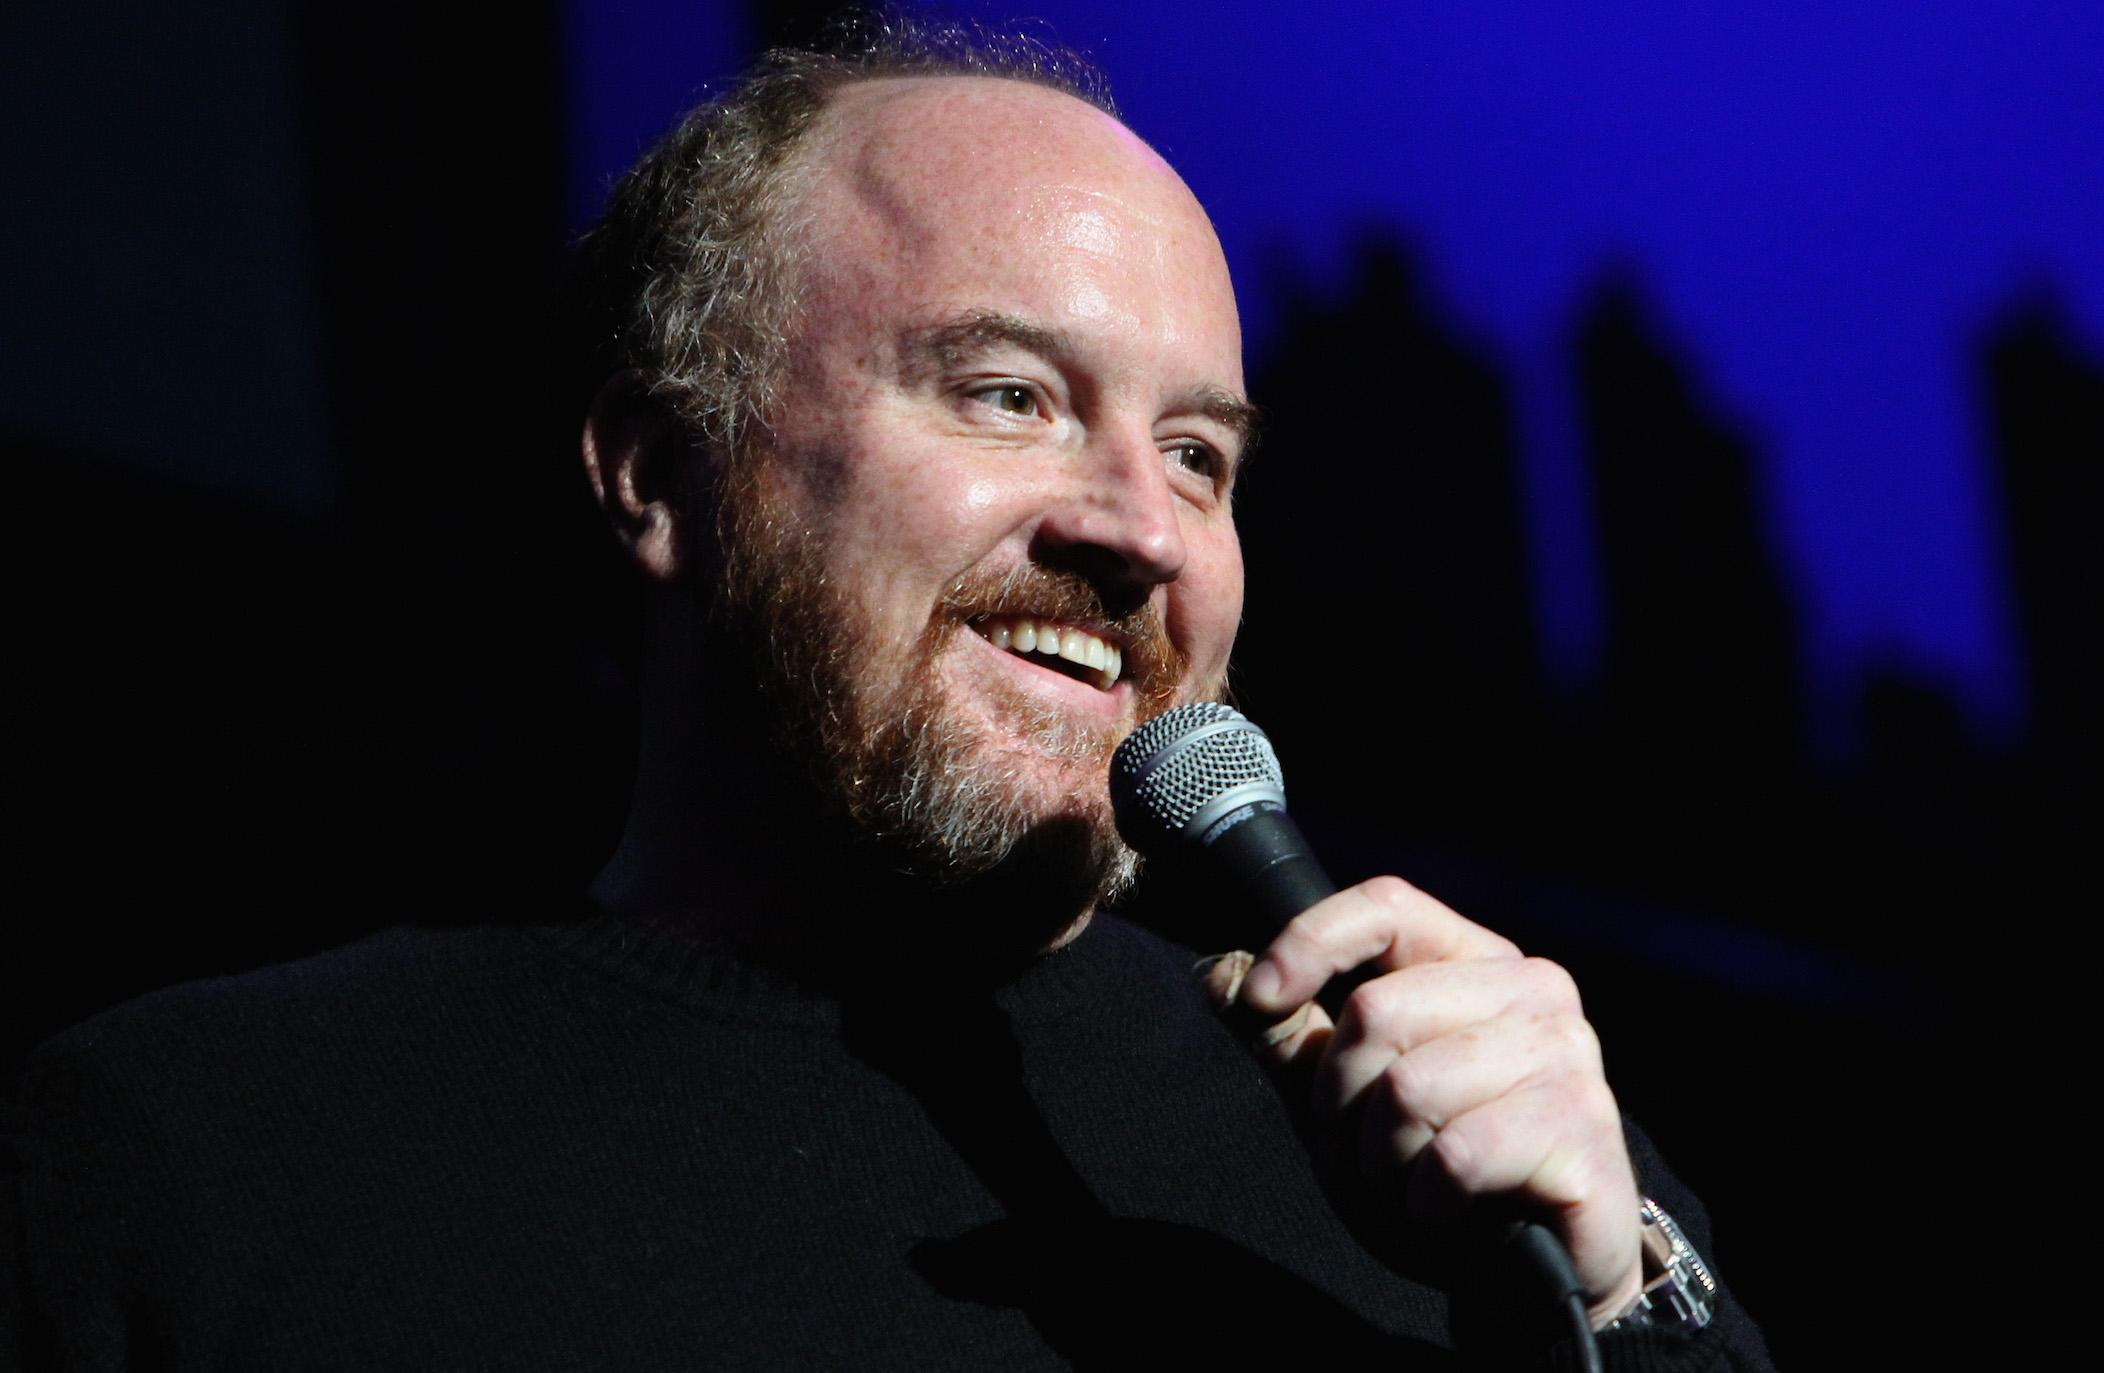 If Louis Ck Can Come Back To A Standing Ovation Has Metoo Really Changed Anything The